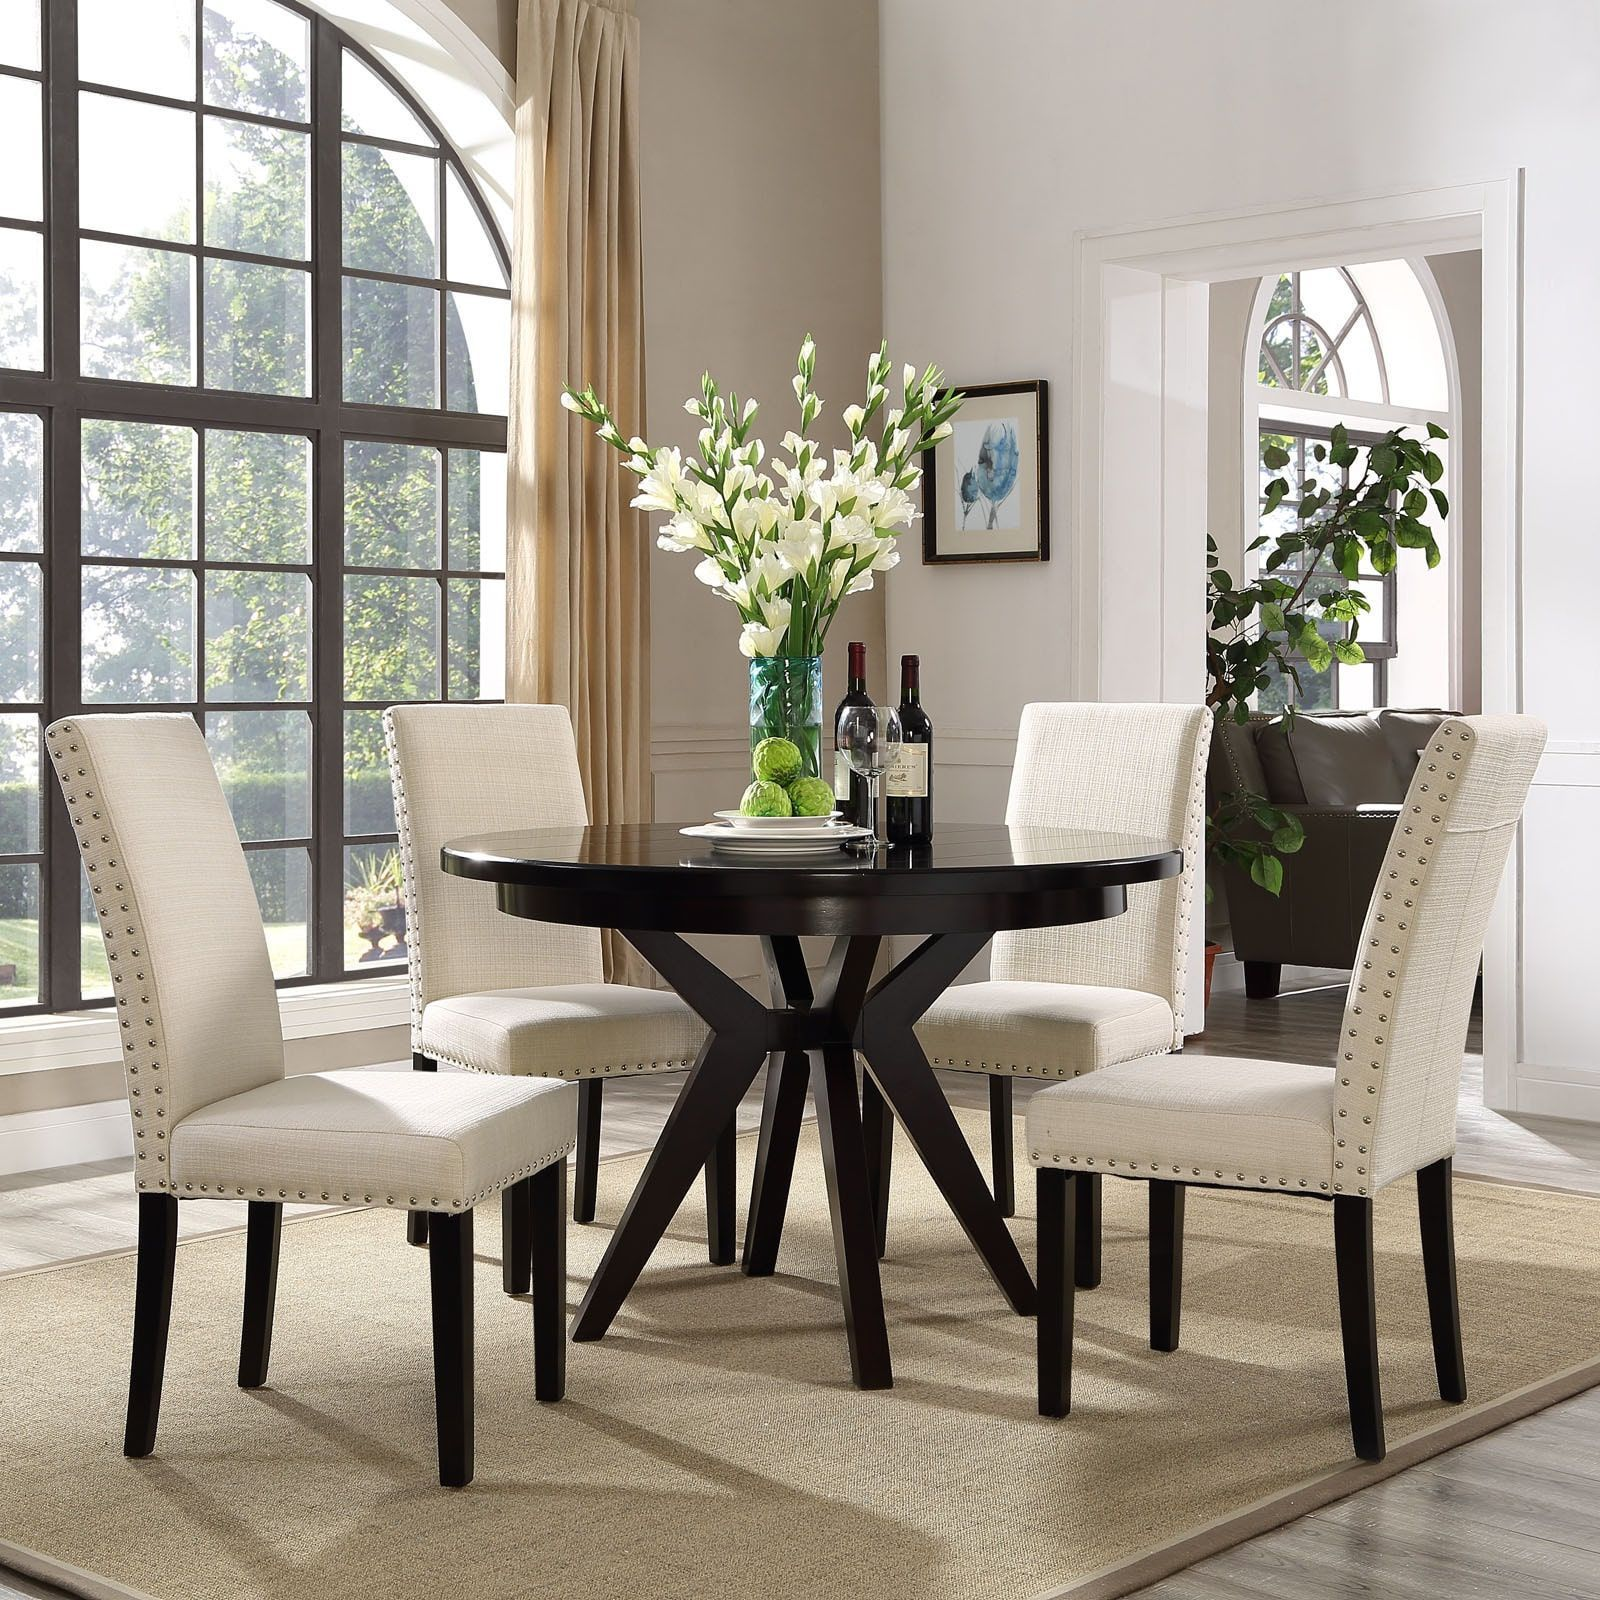 Modway Parcel Upholstered Grey and Beige Dining Chair (Beige), Brown ...